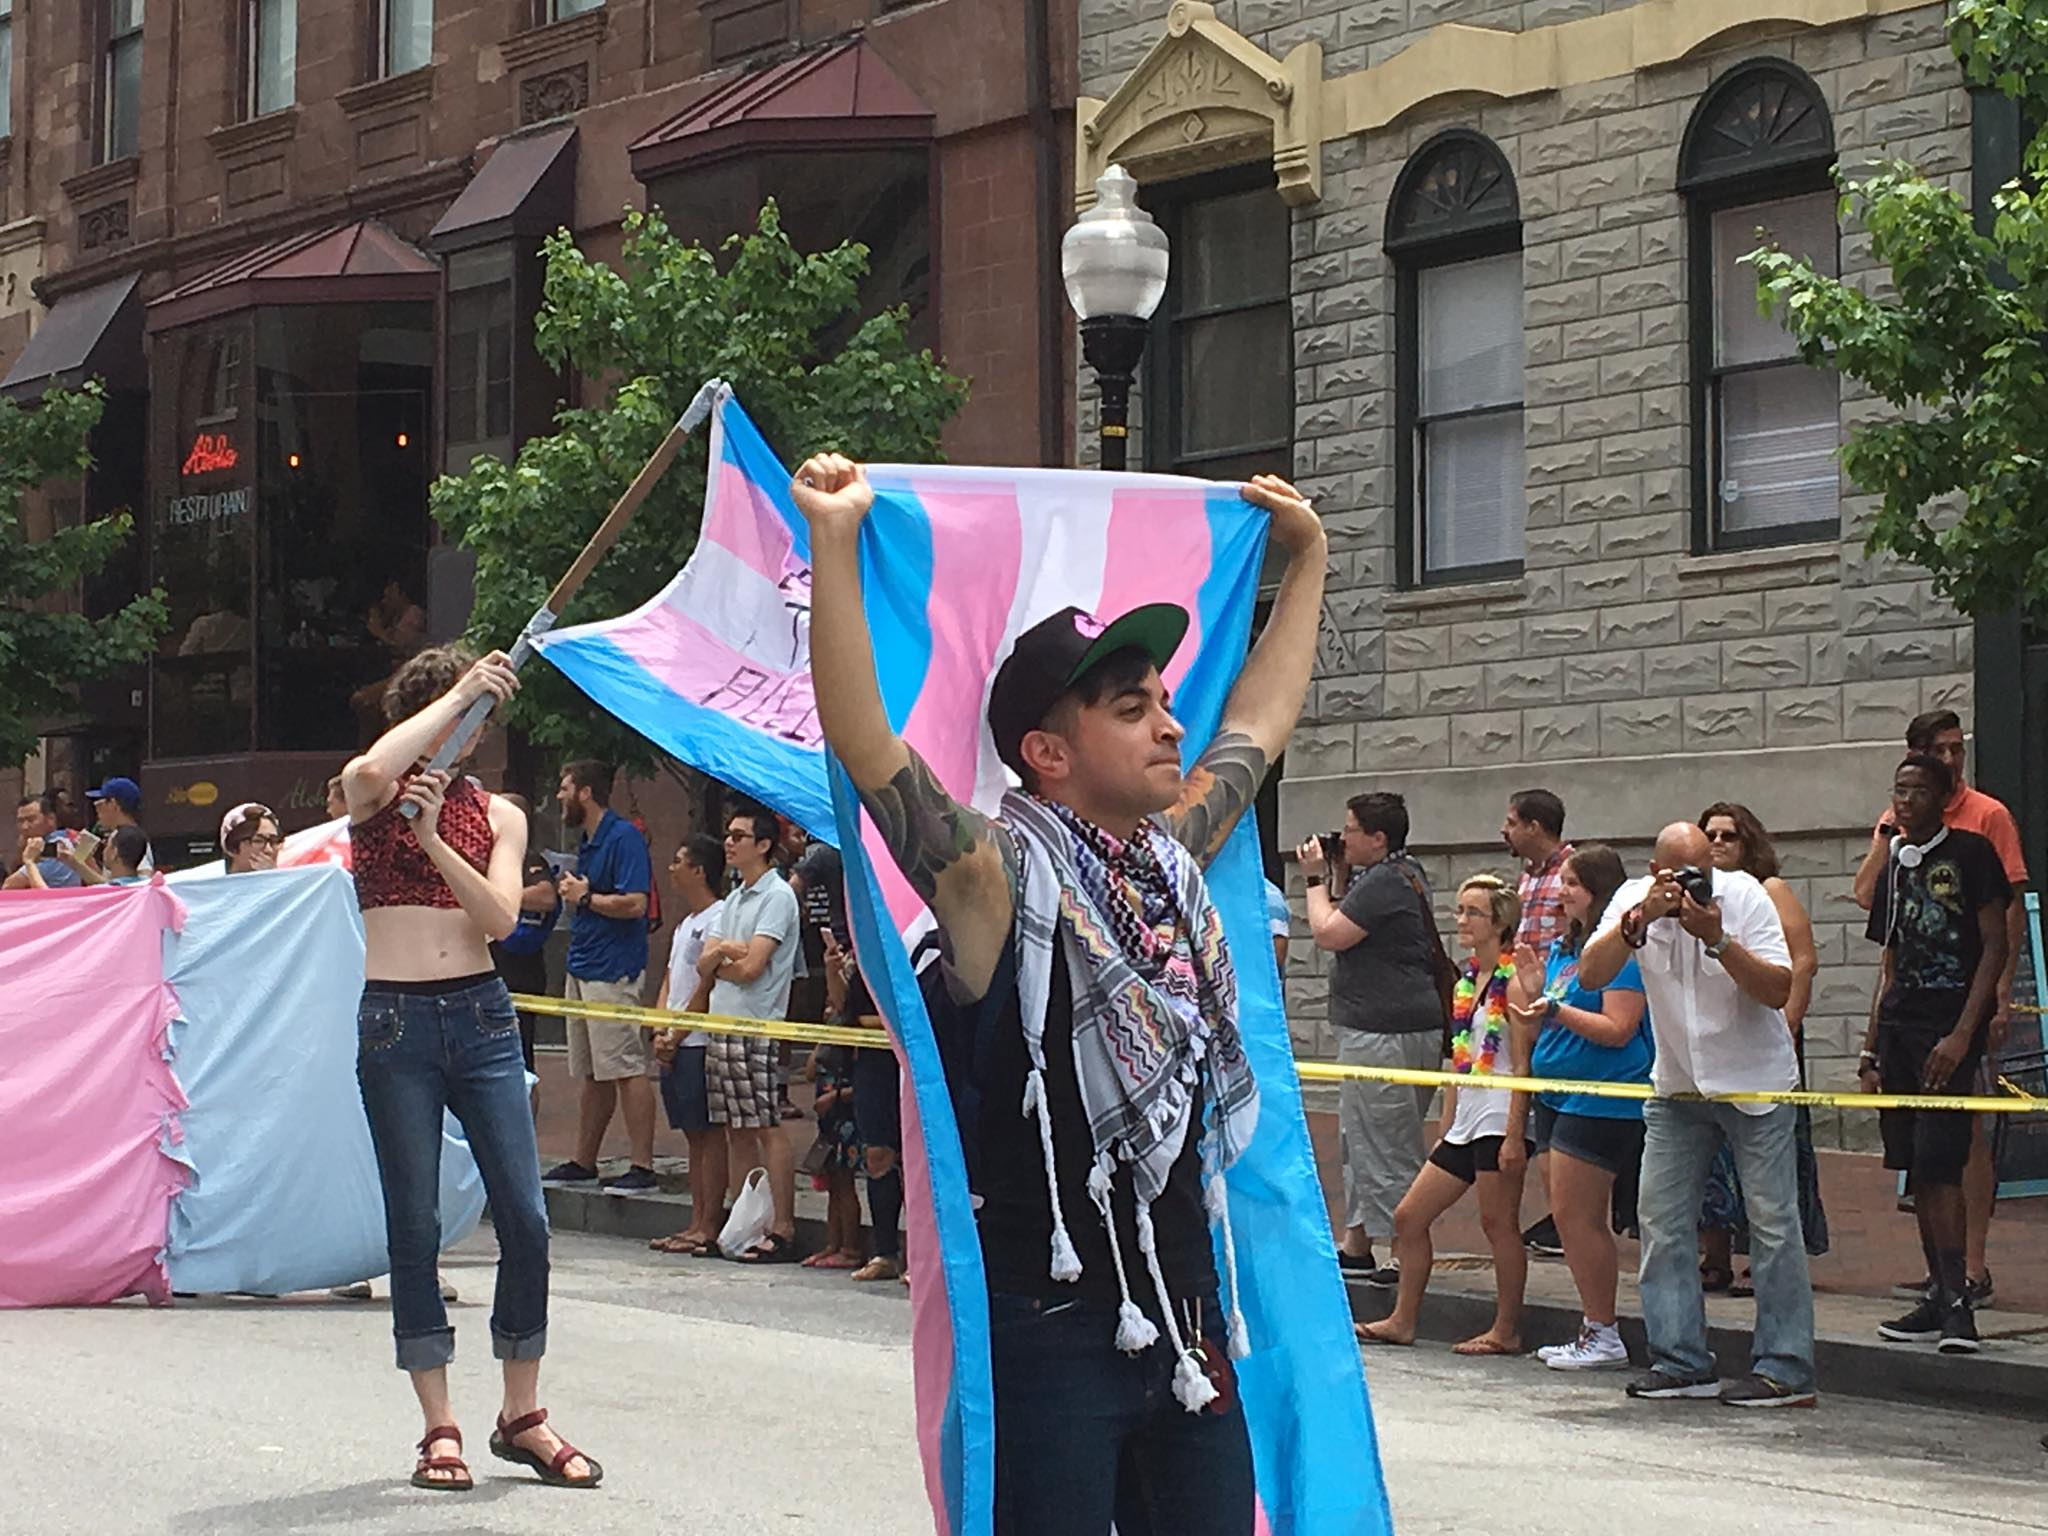 samy nour marching with the baltimore transgender alliance in the 2017 baltimore pride parade. photo by wilson freeman.